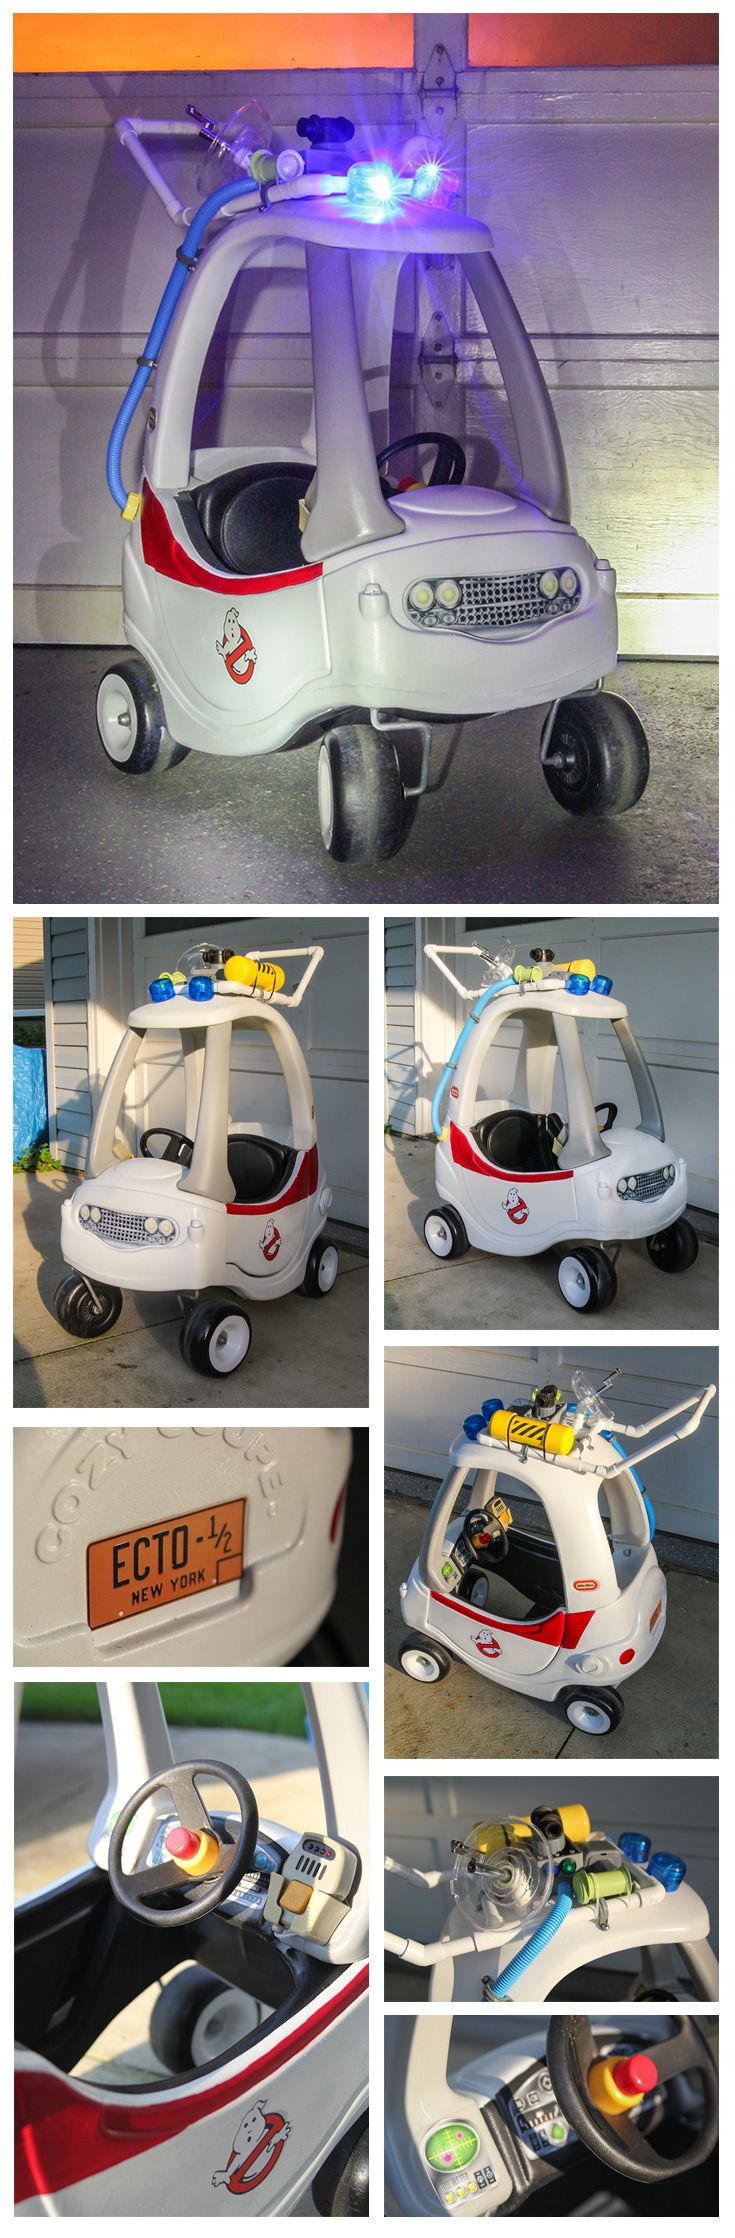 Custom made Ghostbusters Ecto-1/2 Cozy Coupe.                                                                                                                                                      More